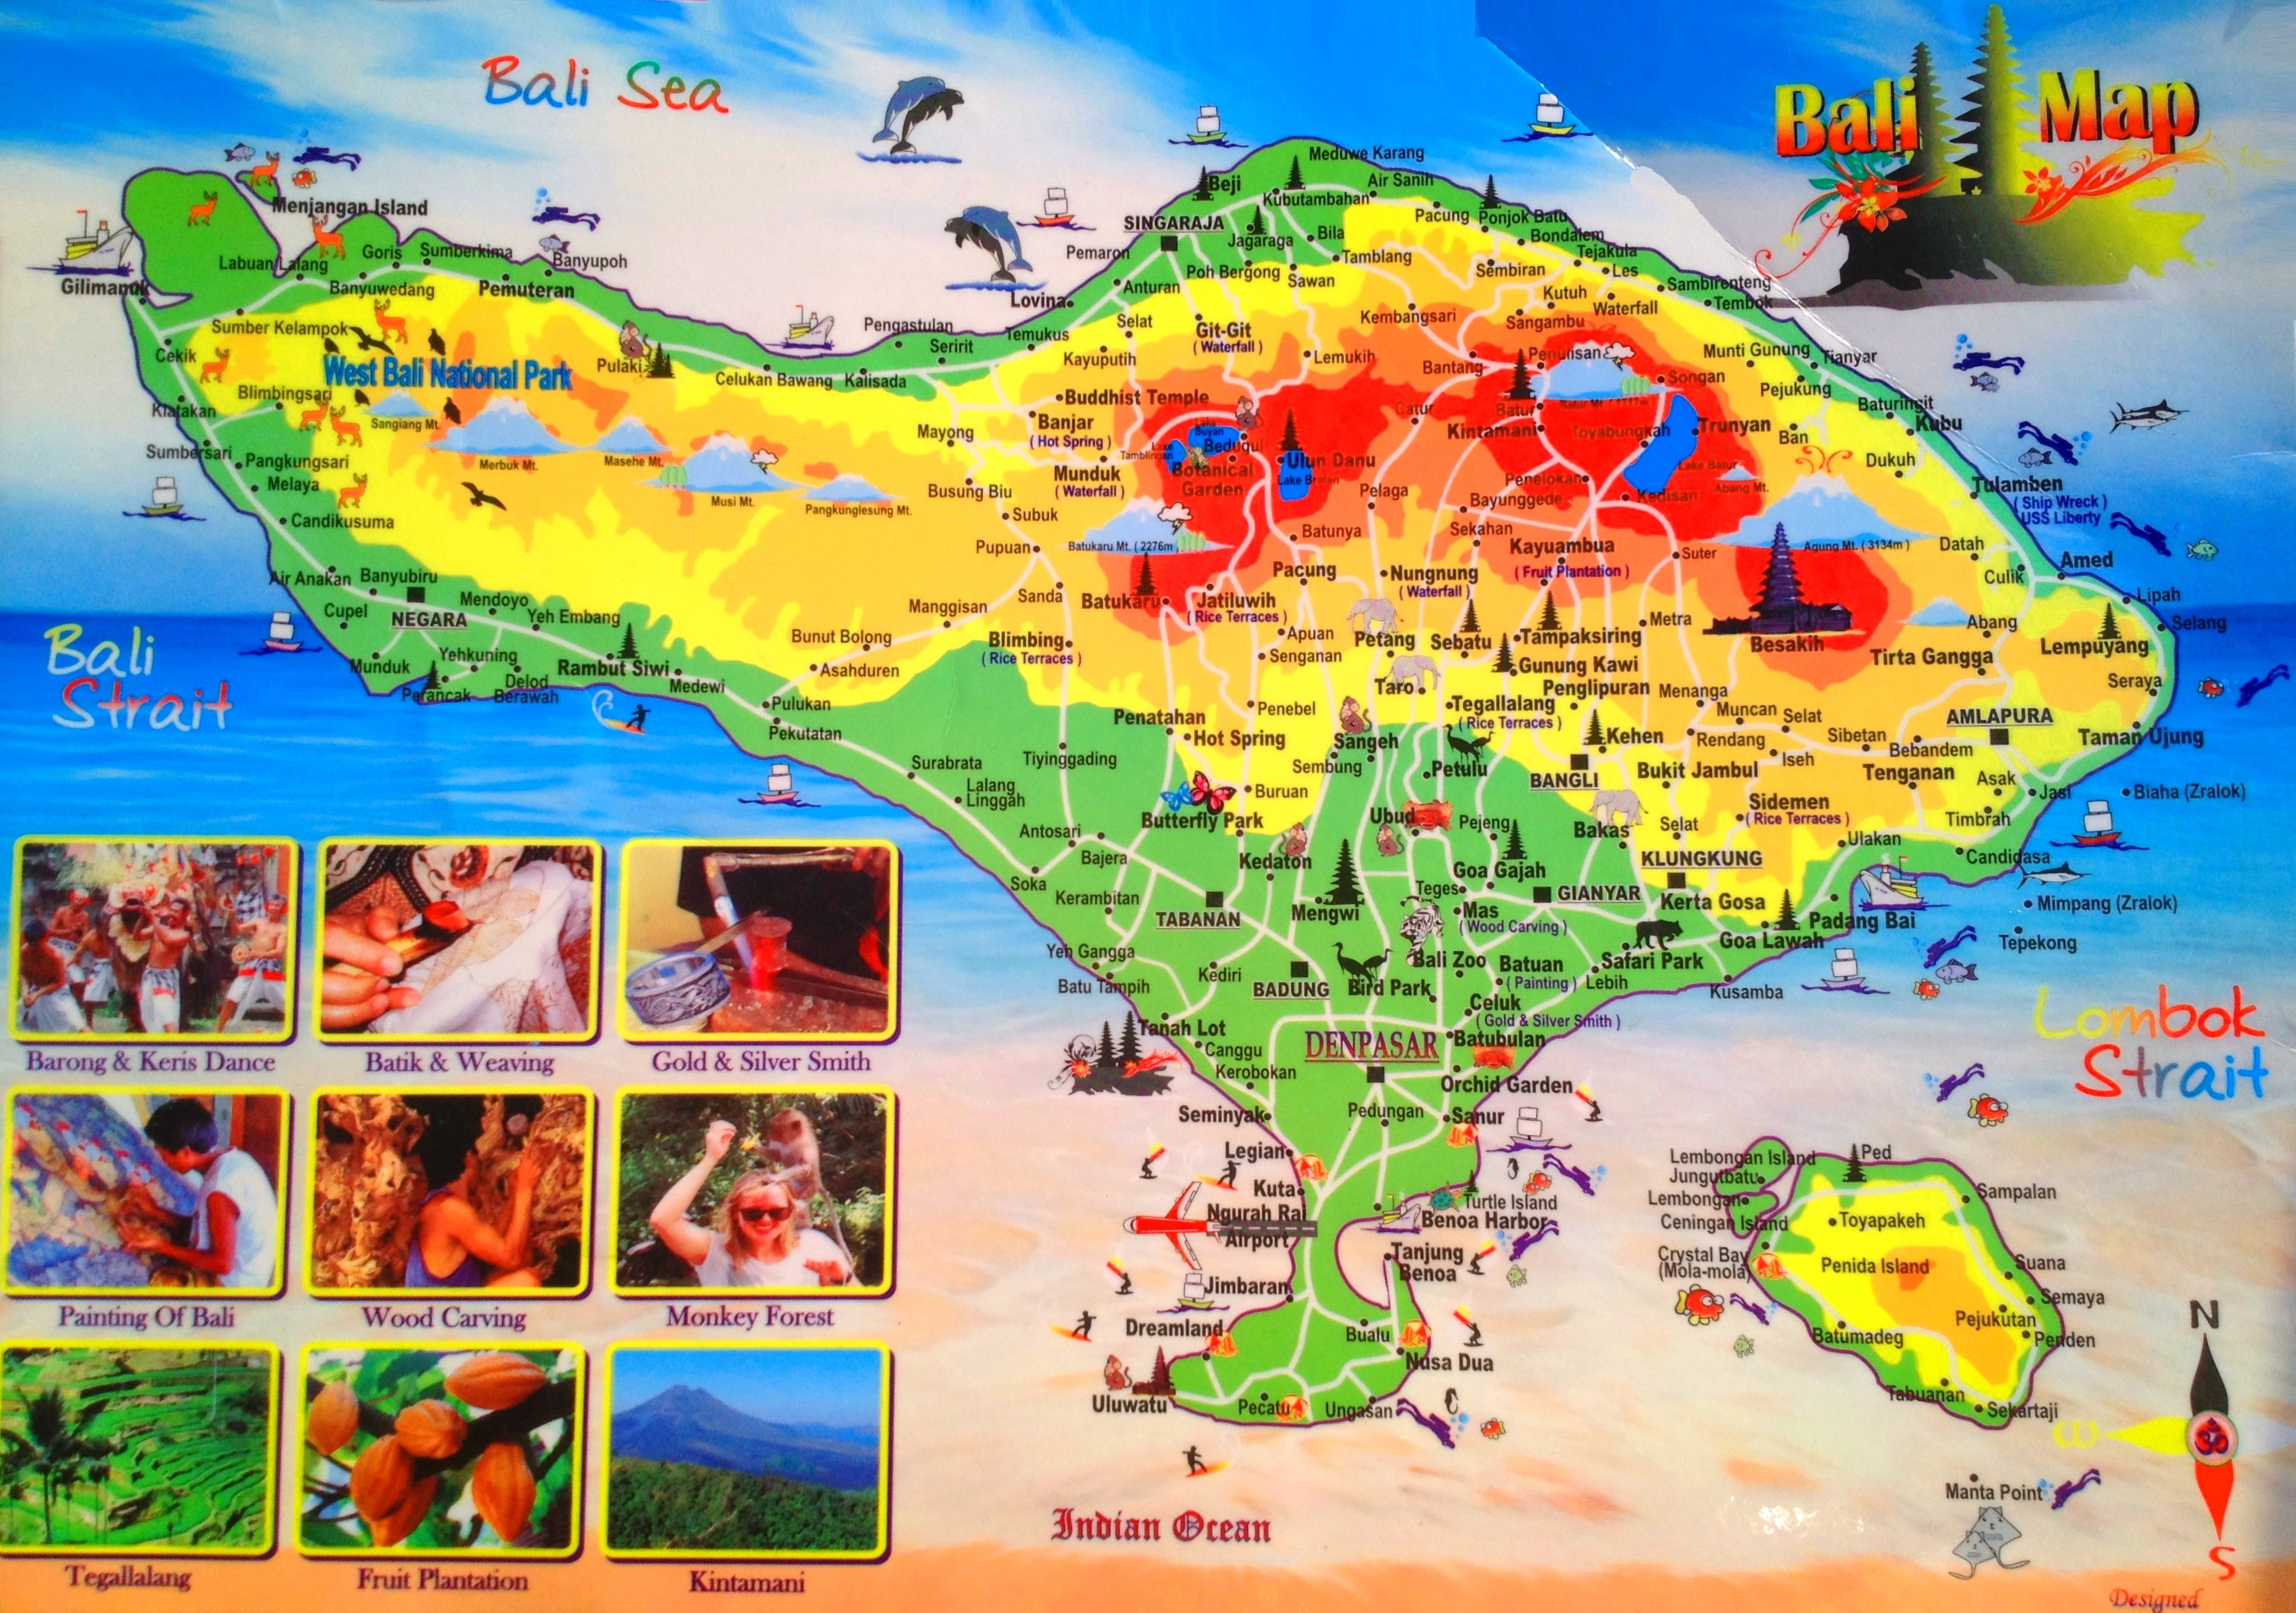 Bali tourist attractions map